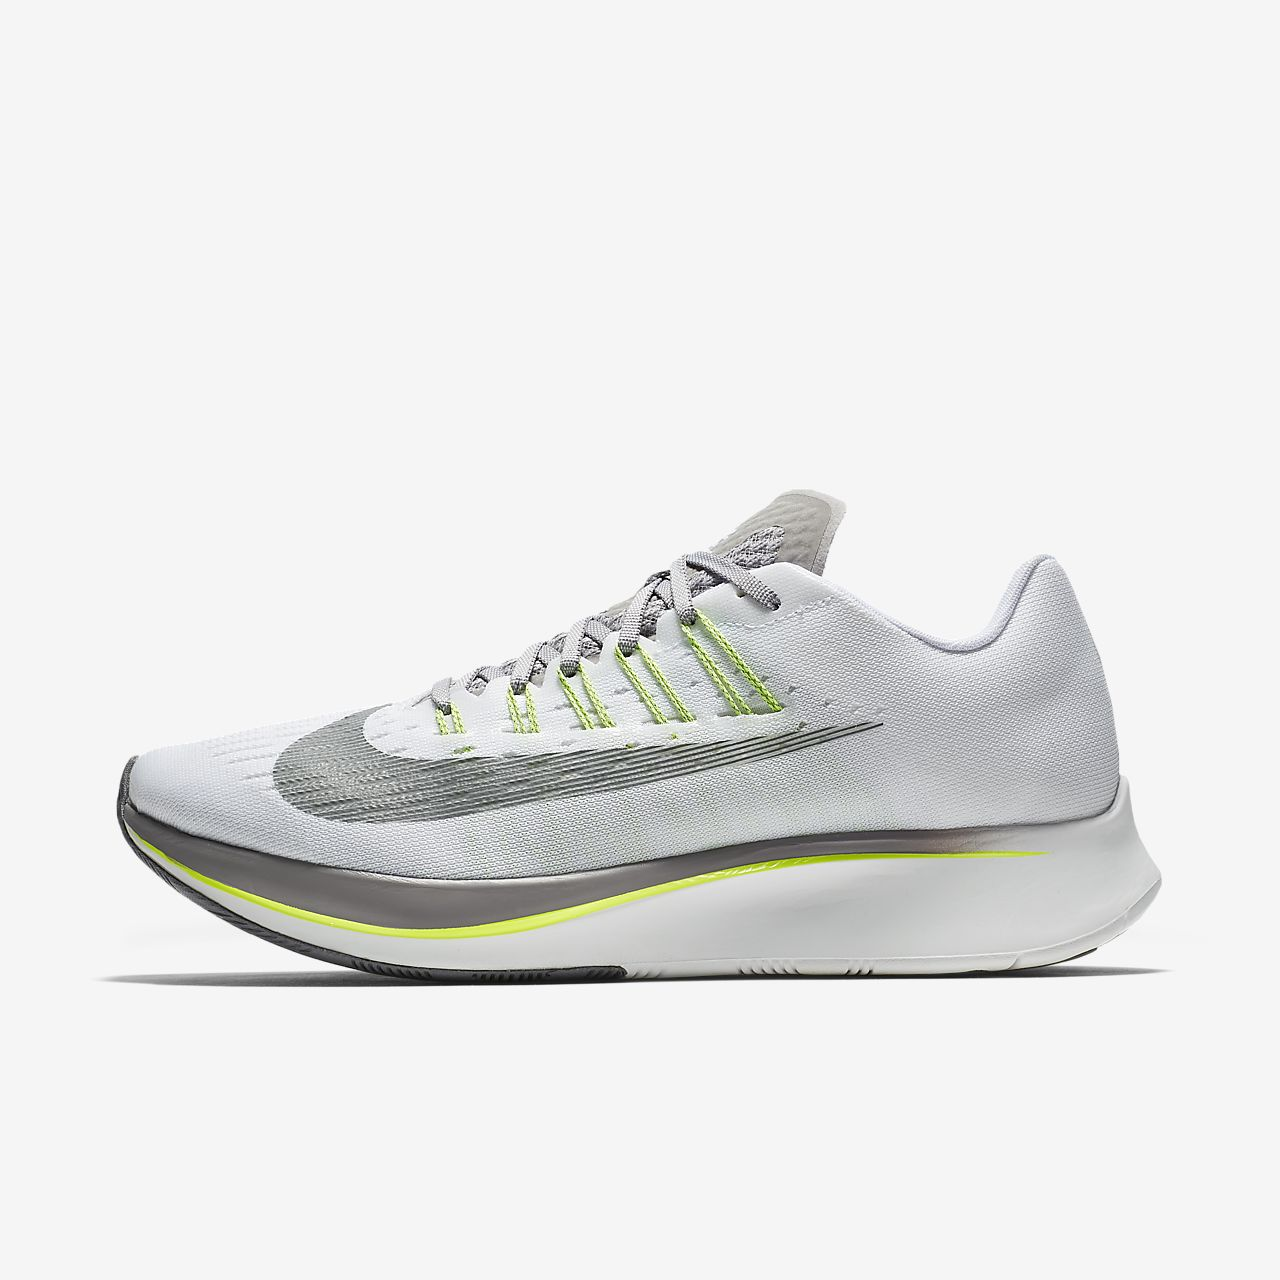 a95cf7e989344 Nike Zoom Fly Men s Running Shoe. Nike.com